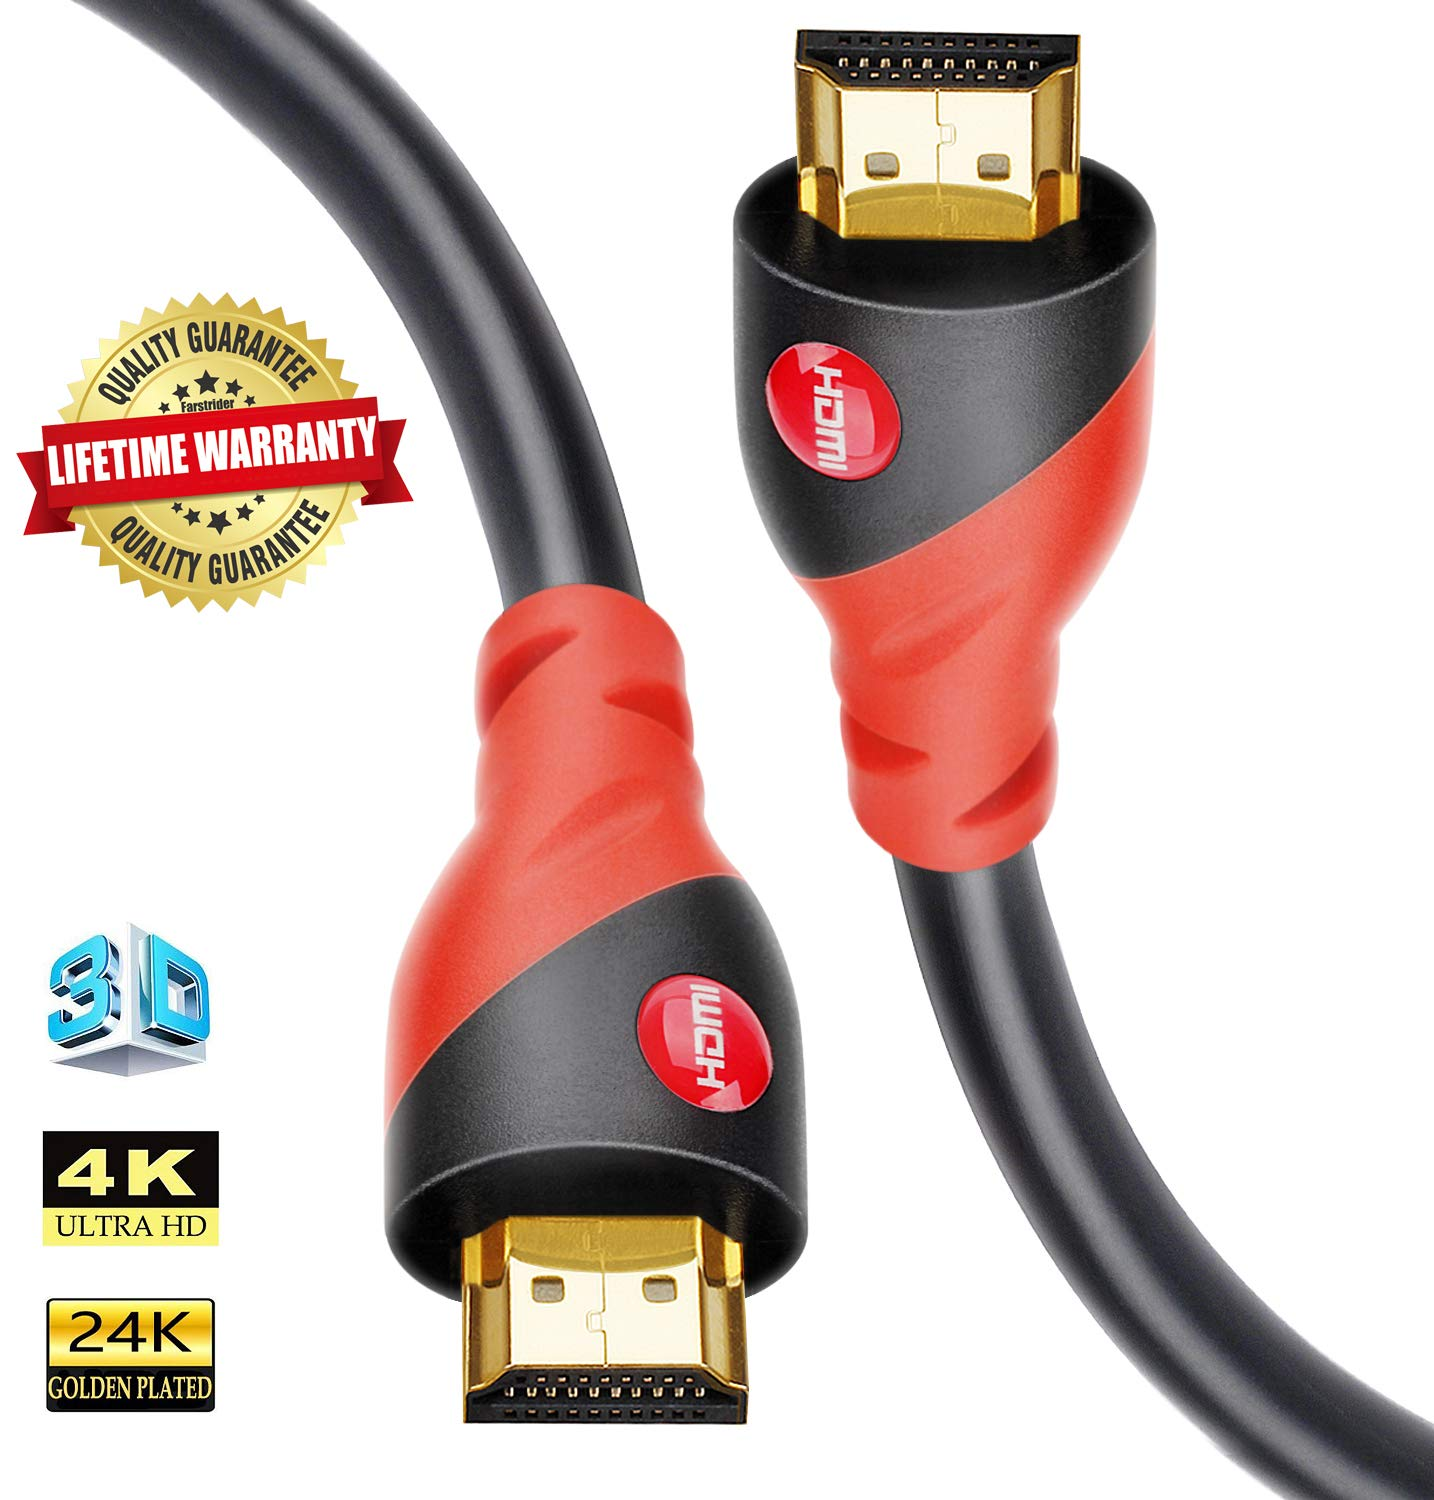 HDMI Cable 4K / HDMI Cord 33ft - Ultra HD 4K Ready HDMI 2.0 (4K@60Hz 4:4:4) - High Speed 18Gbps - 26AWG Cord-Ethernet /3D / ARC/CEC/HDCP 2.2 / CL3 by Farstrider by Farstrider